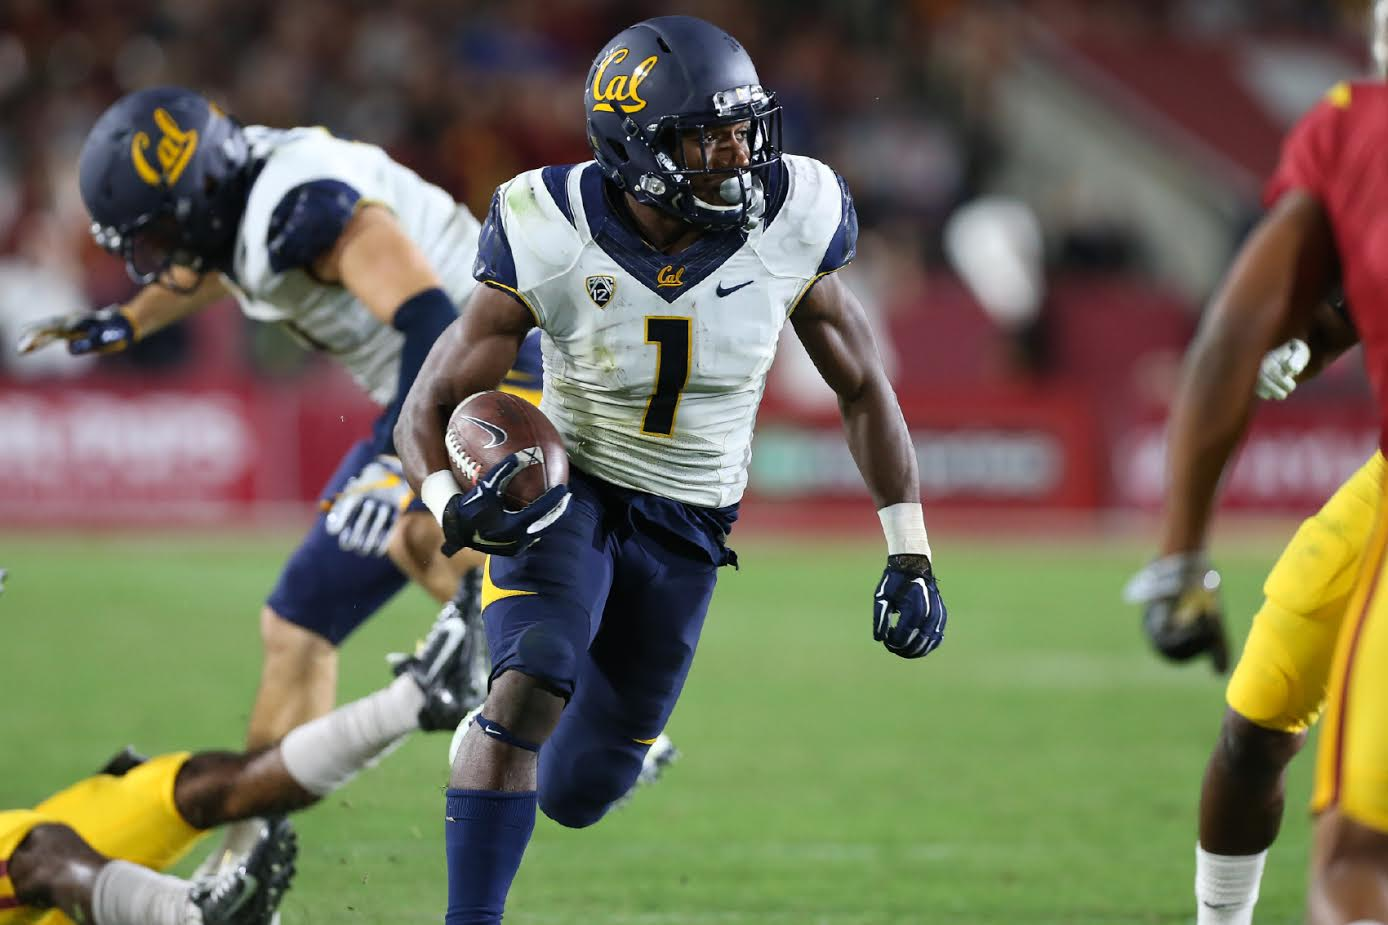 Cal Receiver Melquise Stovall running after a catch during the Cal vs USC on Oct. 28, 2016 at Los Angeles Memorial Coliseum, in Los Angeles, Ca. (Photo by Jordon Kelly / fi360 News)